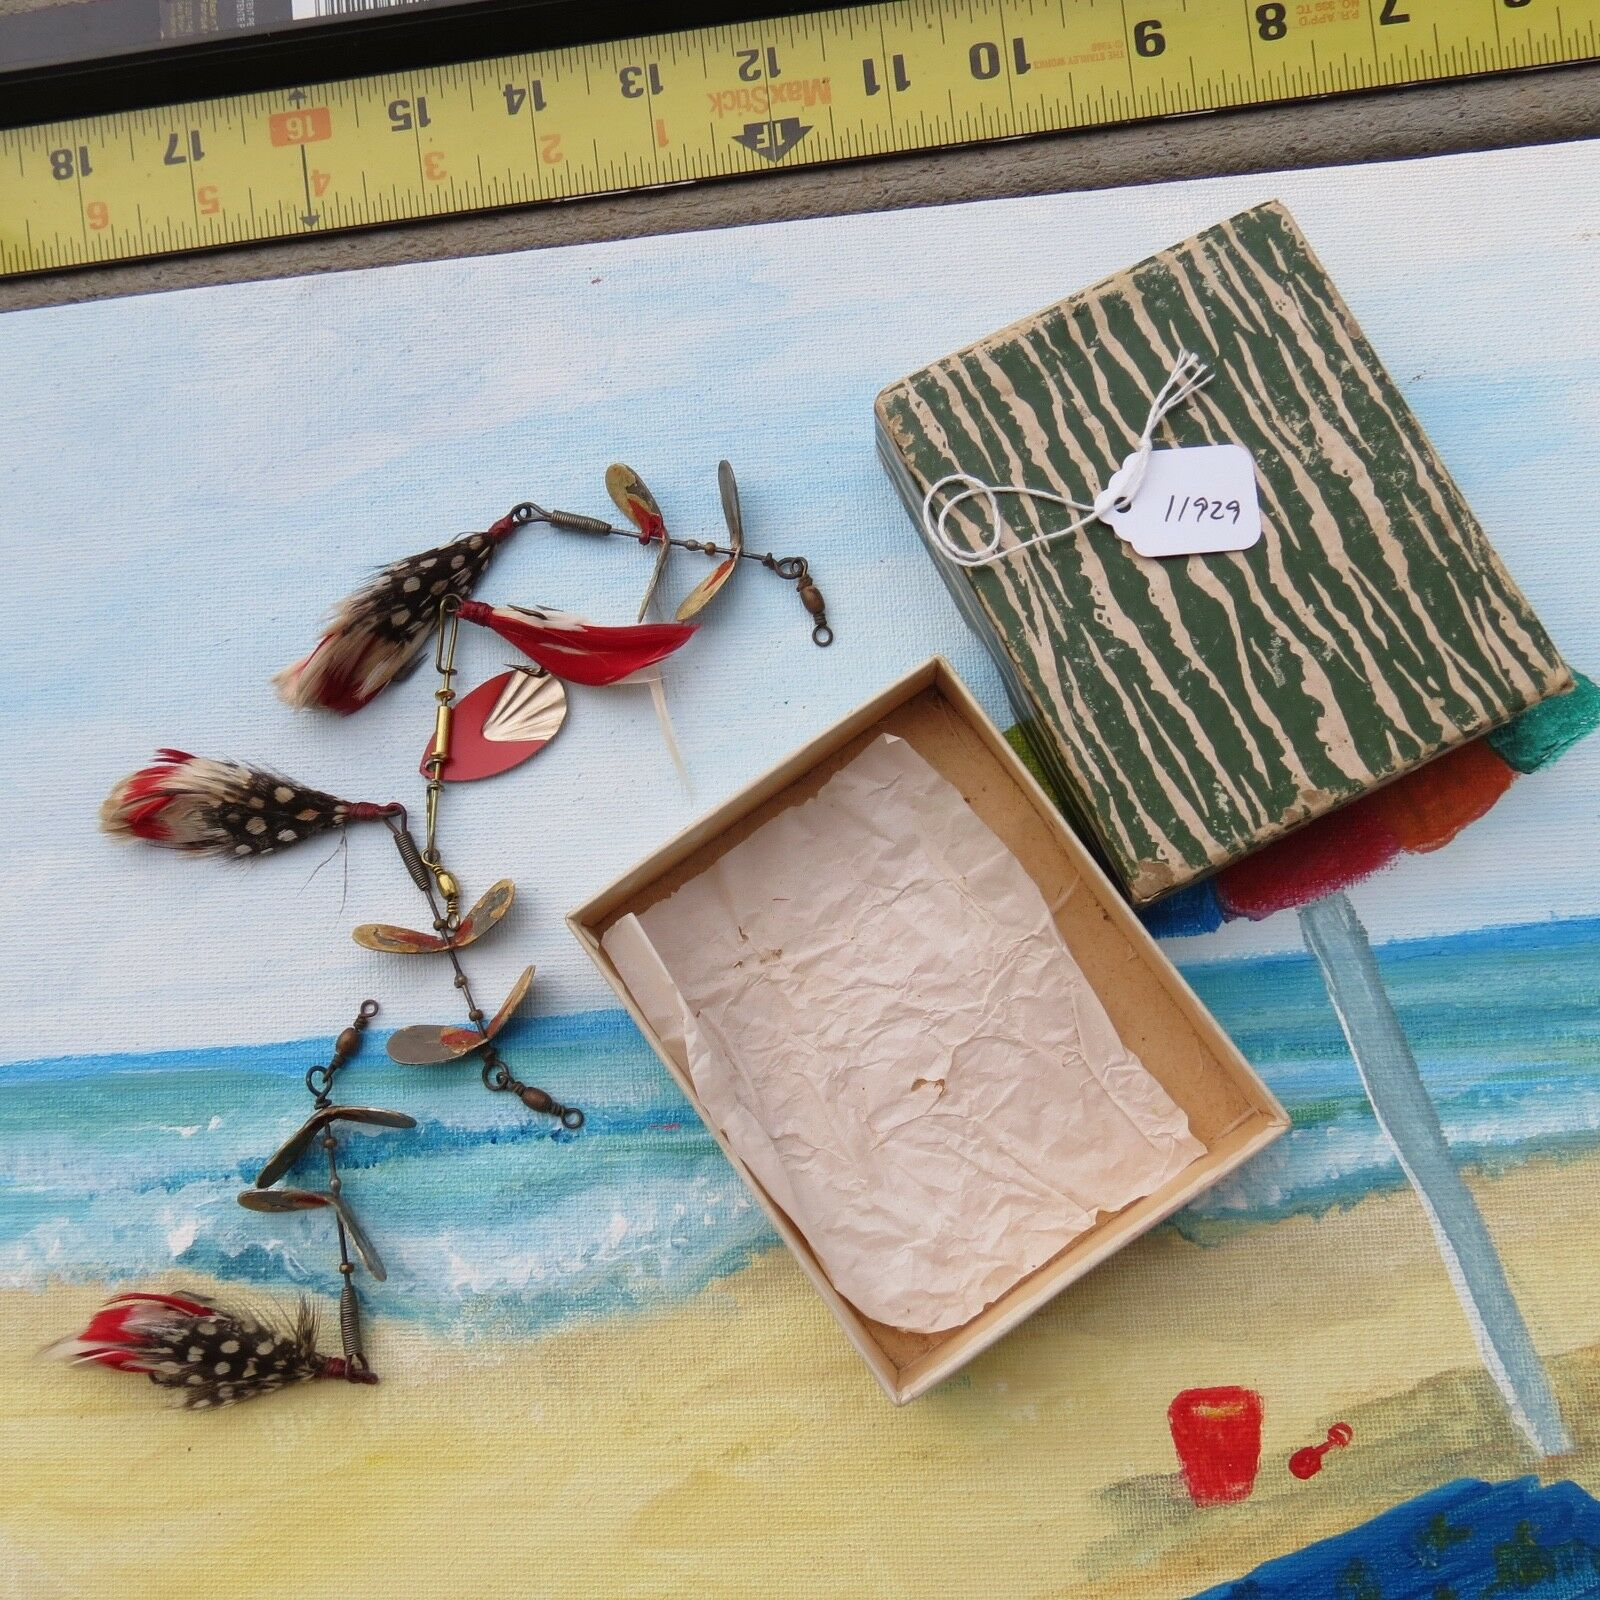 Antique Fishing lures Portage Box with Tandem Fishing lure spinners (11929)